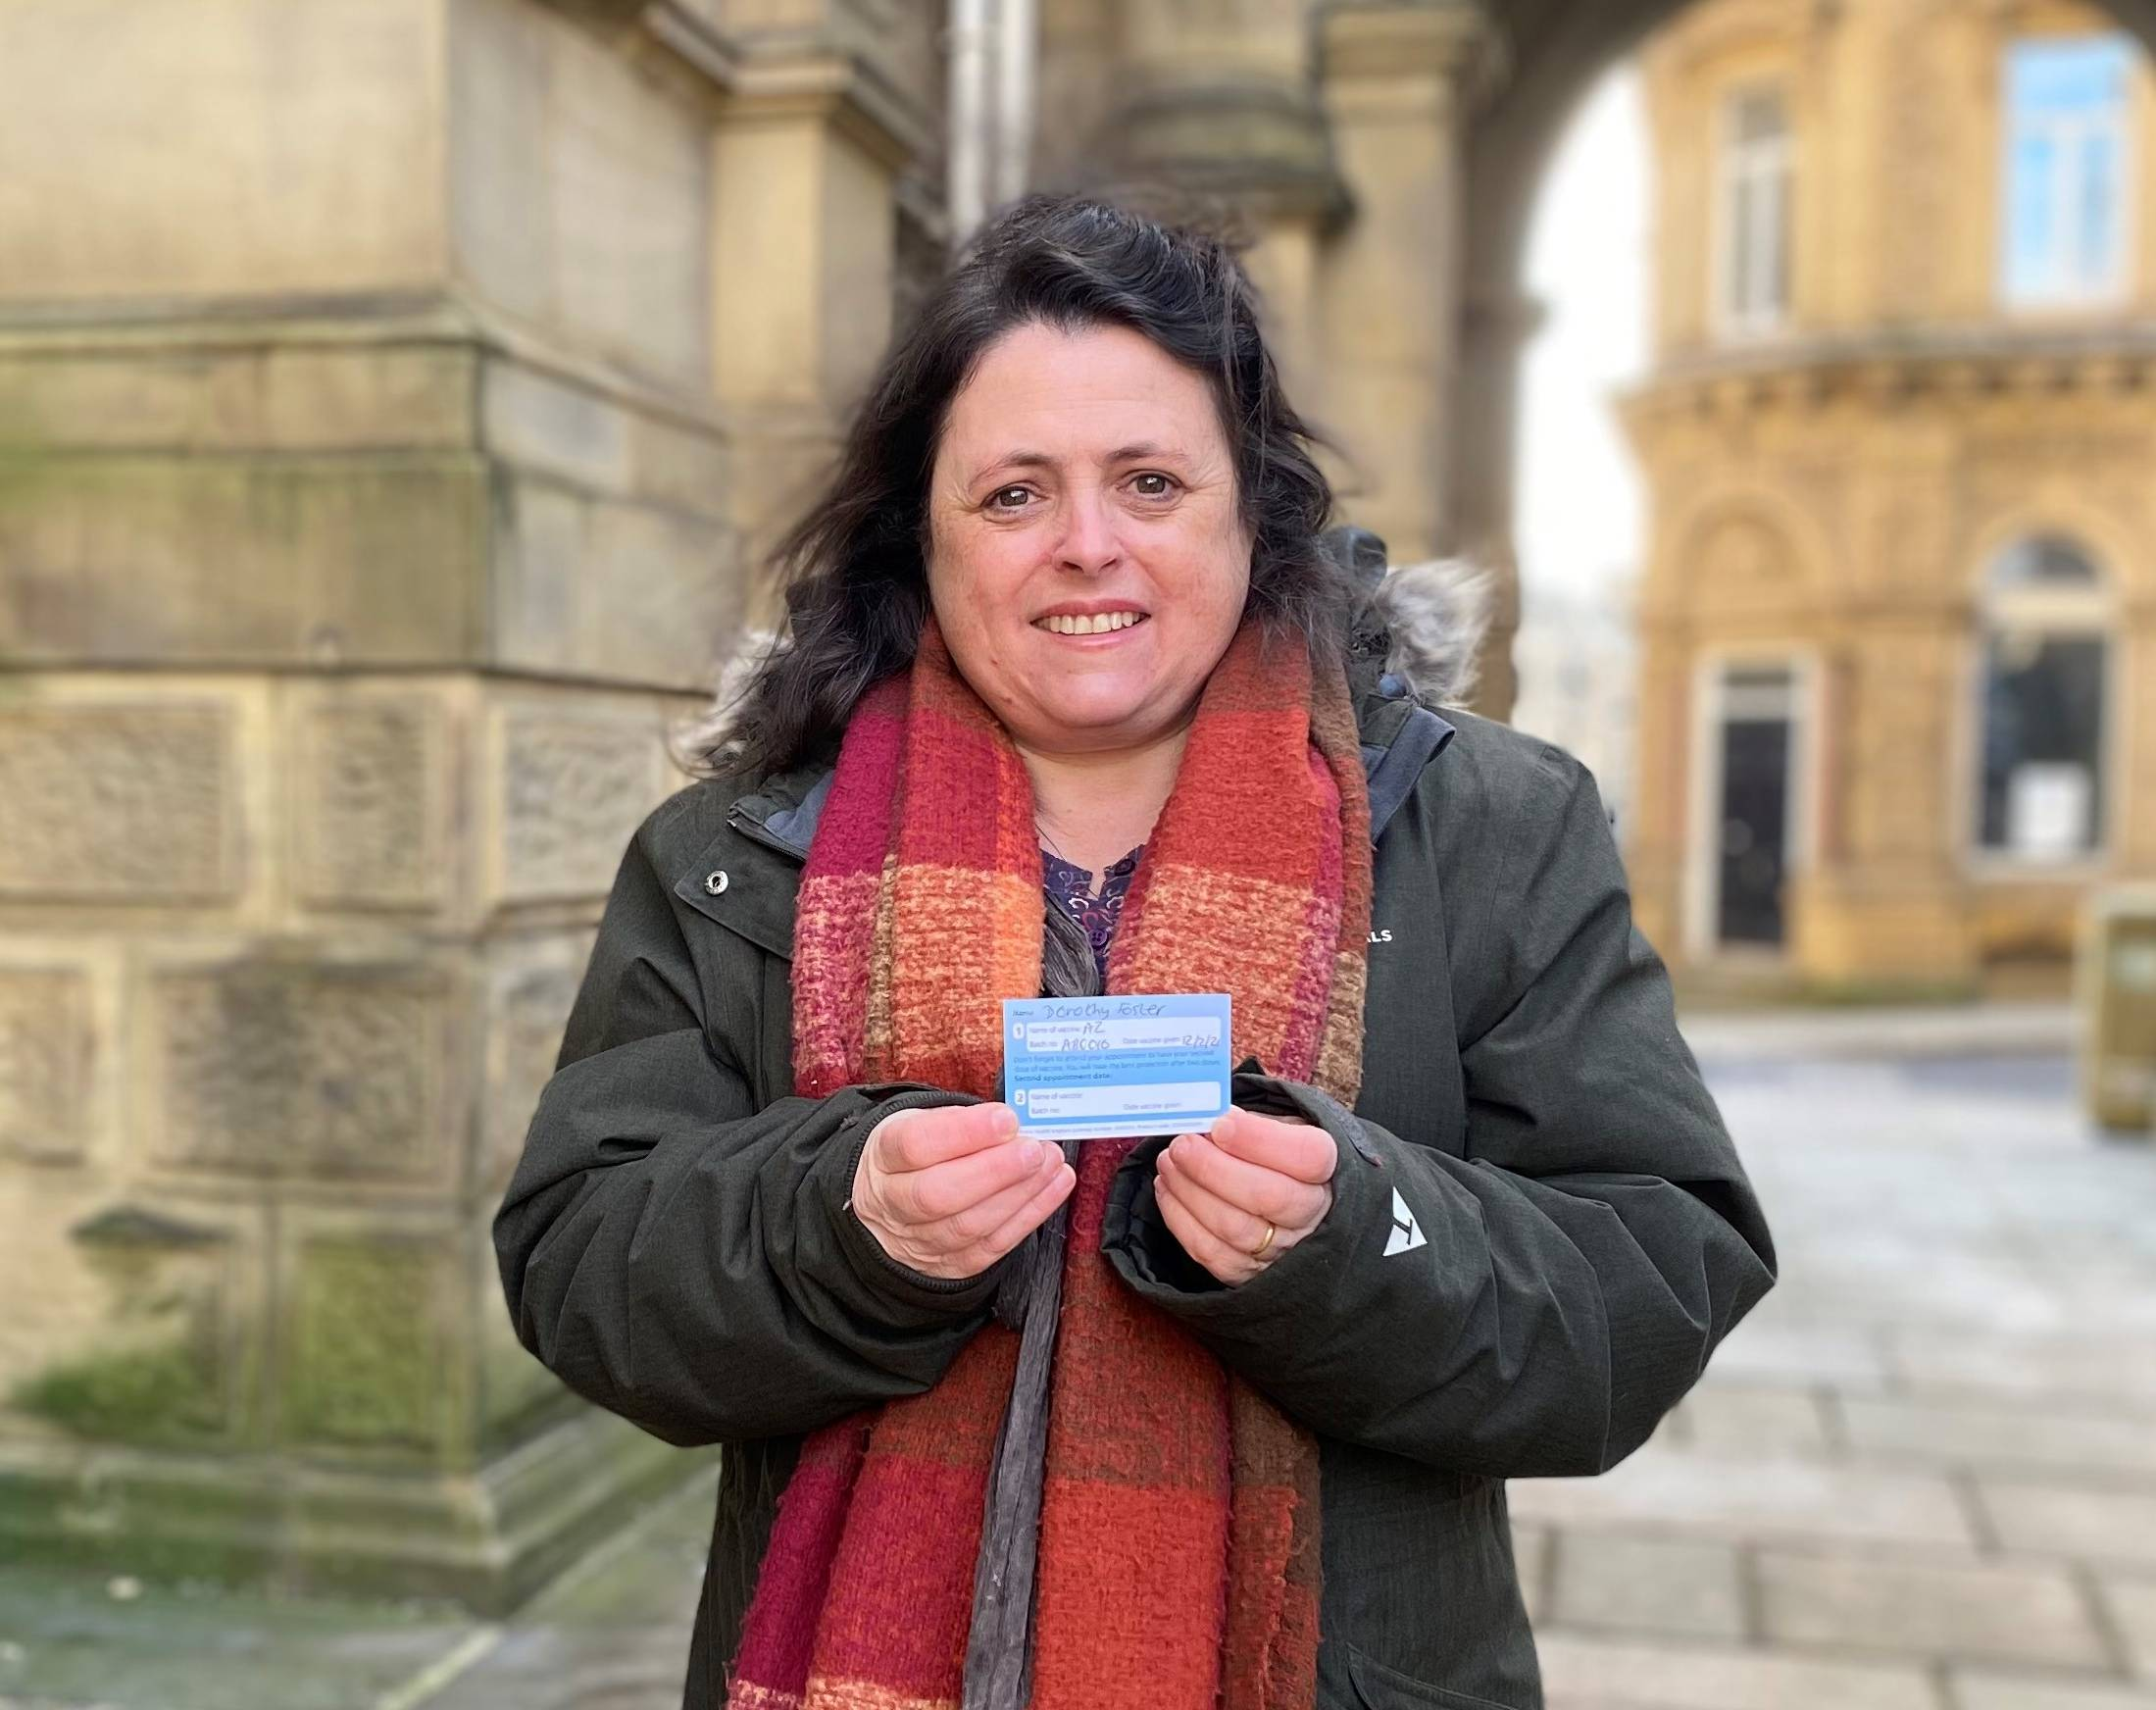 Cllr Dot Foster with her COVID vaccine card